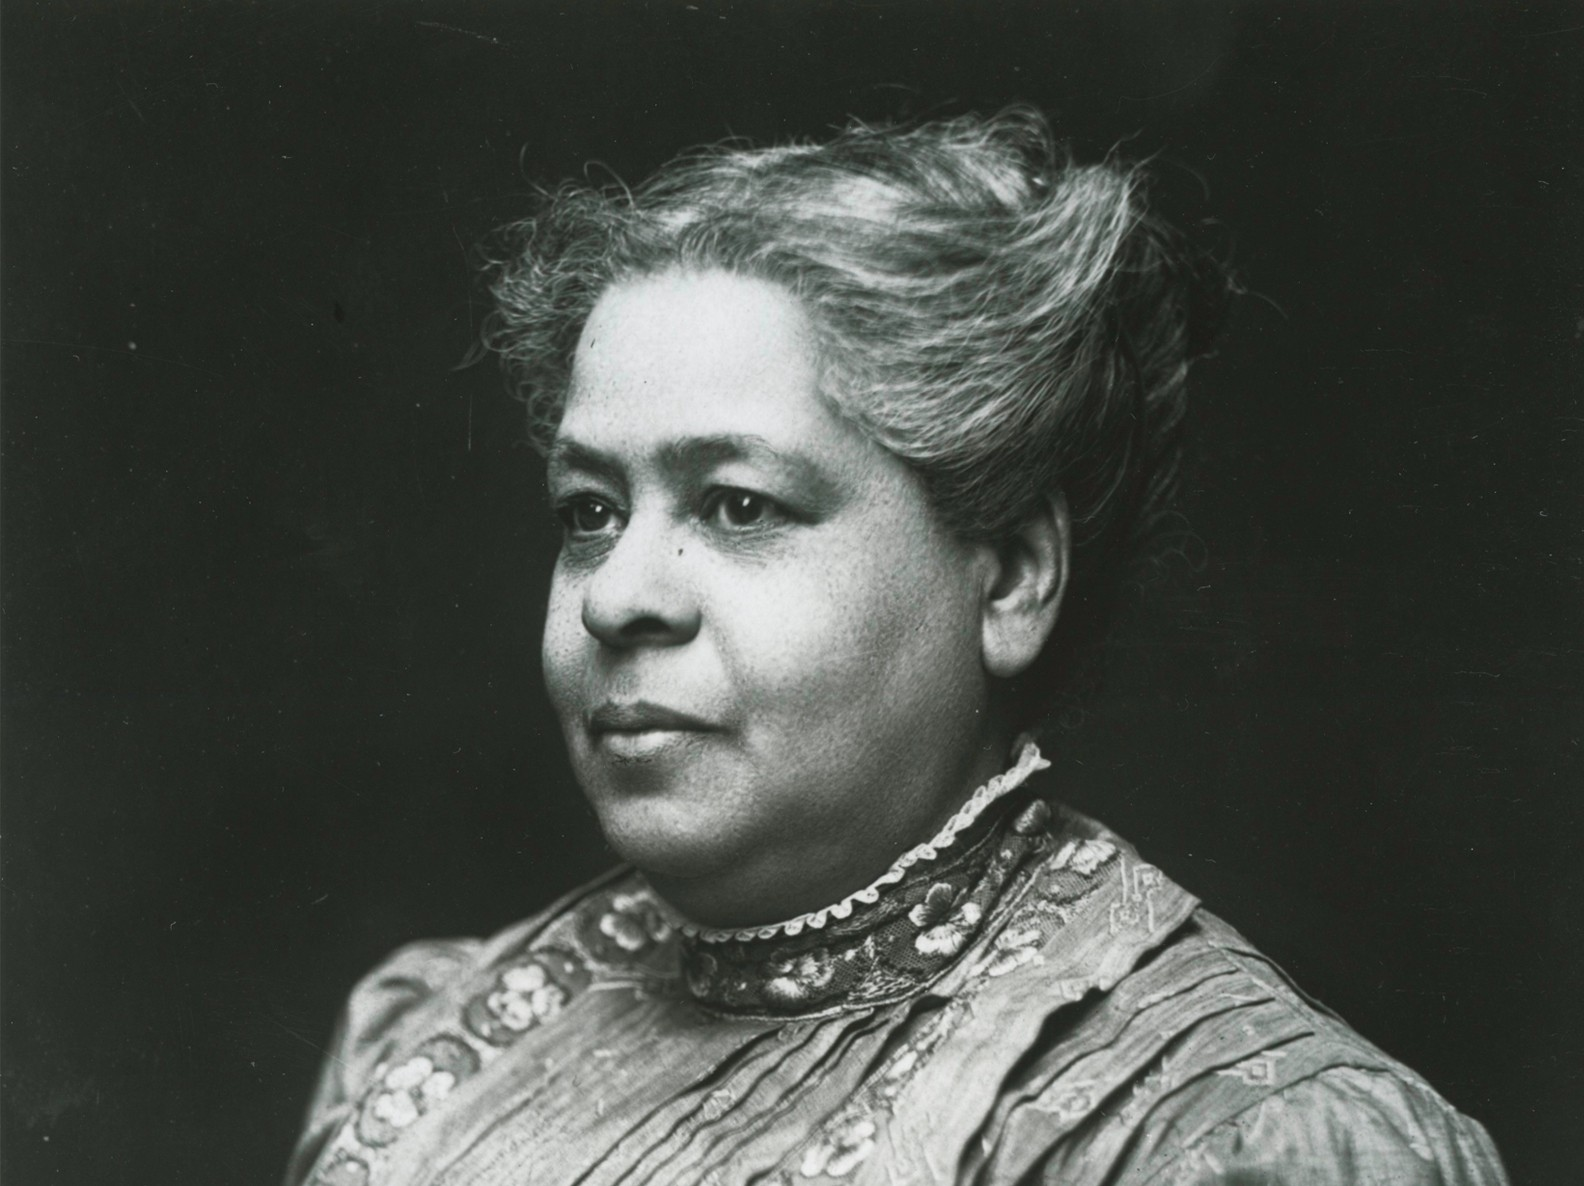 Black and white portrait of Maritcha Lyons, a Black female educator, in formal dress